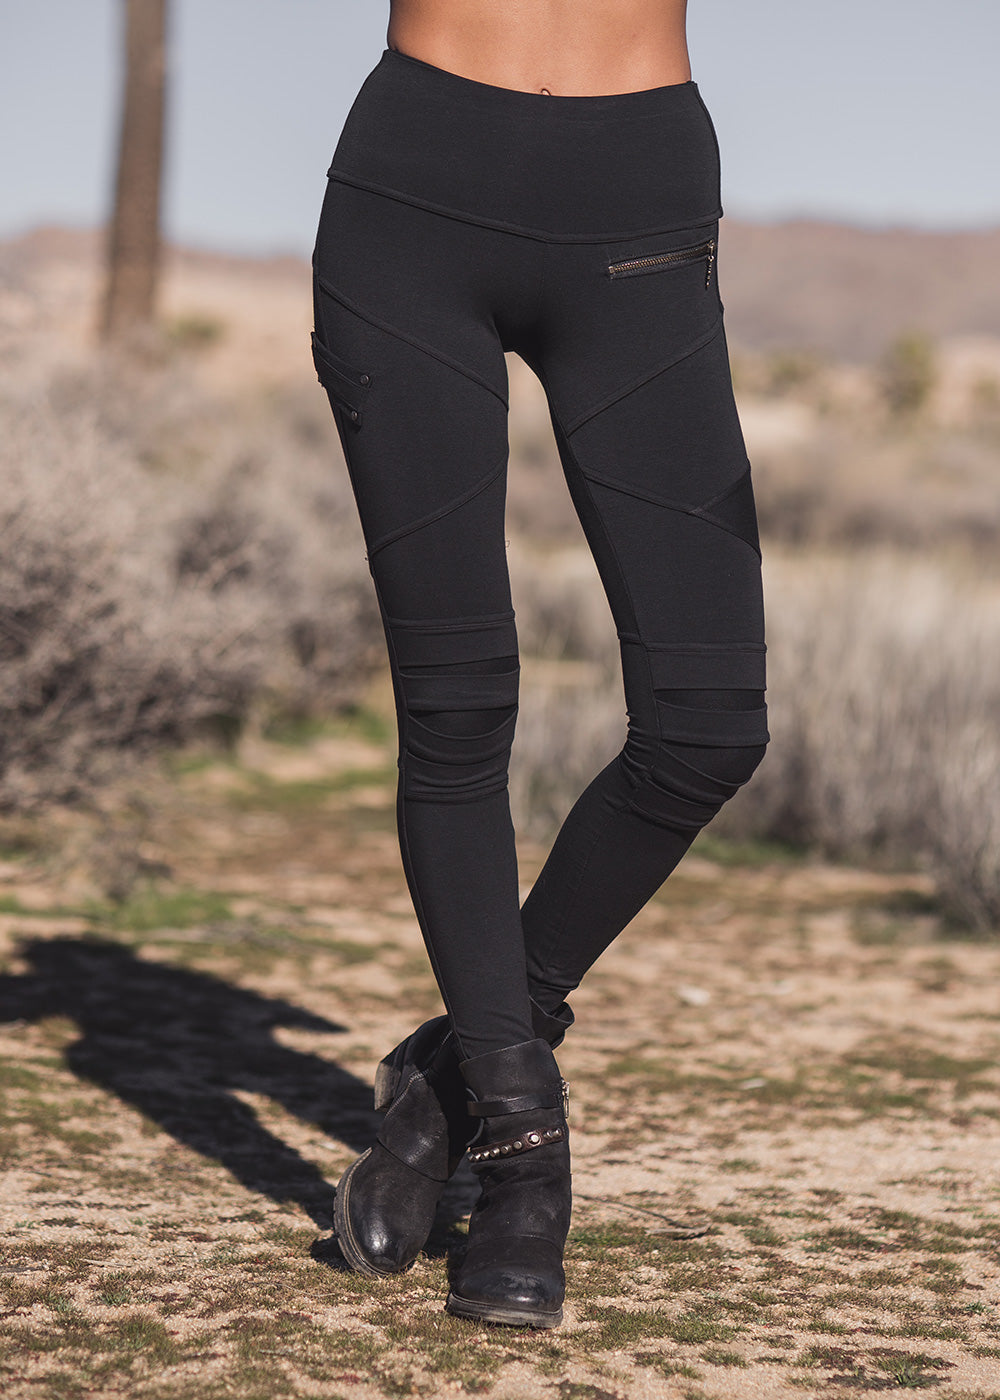 Apocalpse Legging- Black (Bamboo & Organic Cotton)